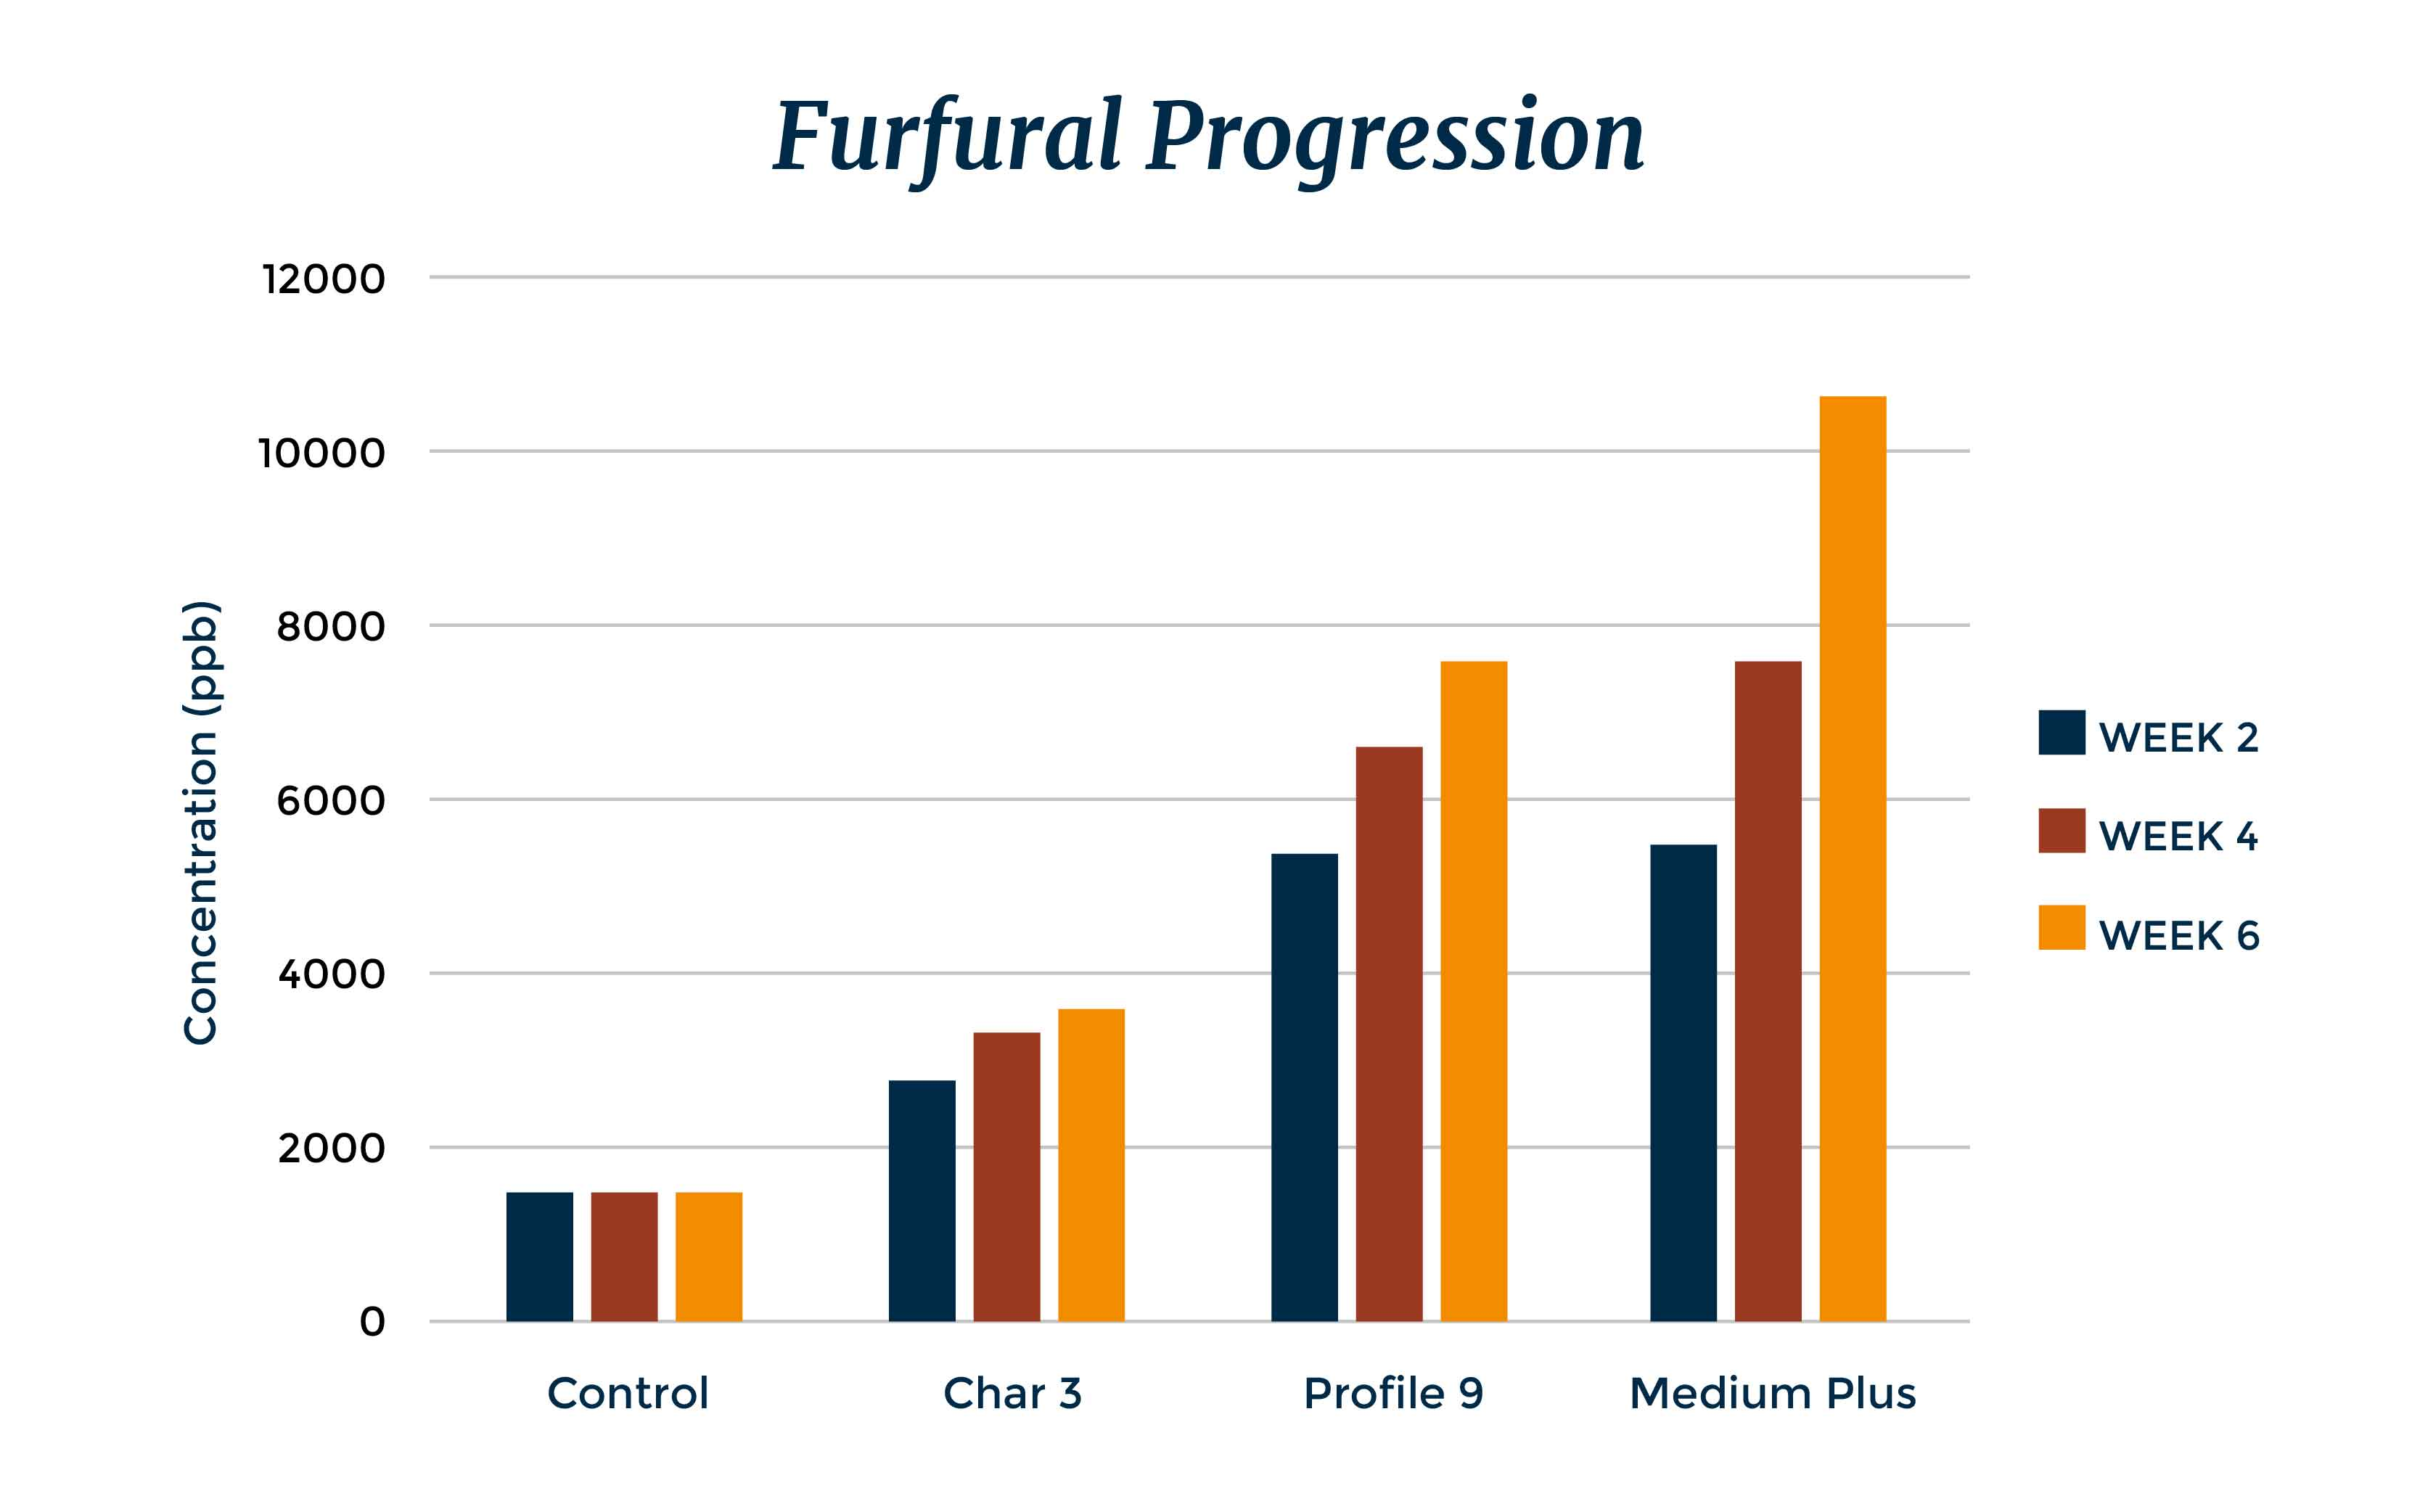 Independent Stave Company | Furfural Progression